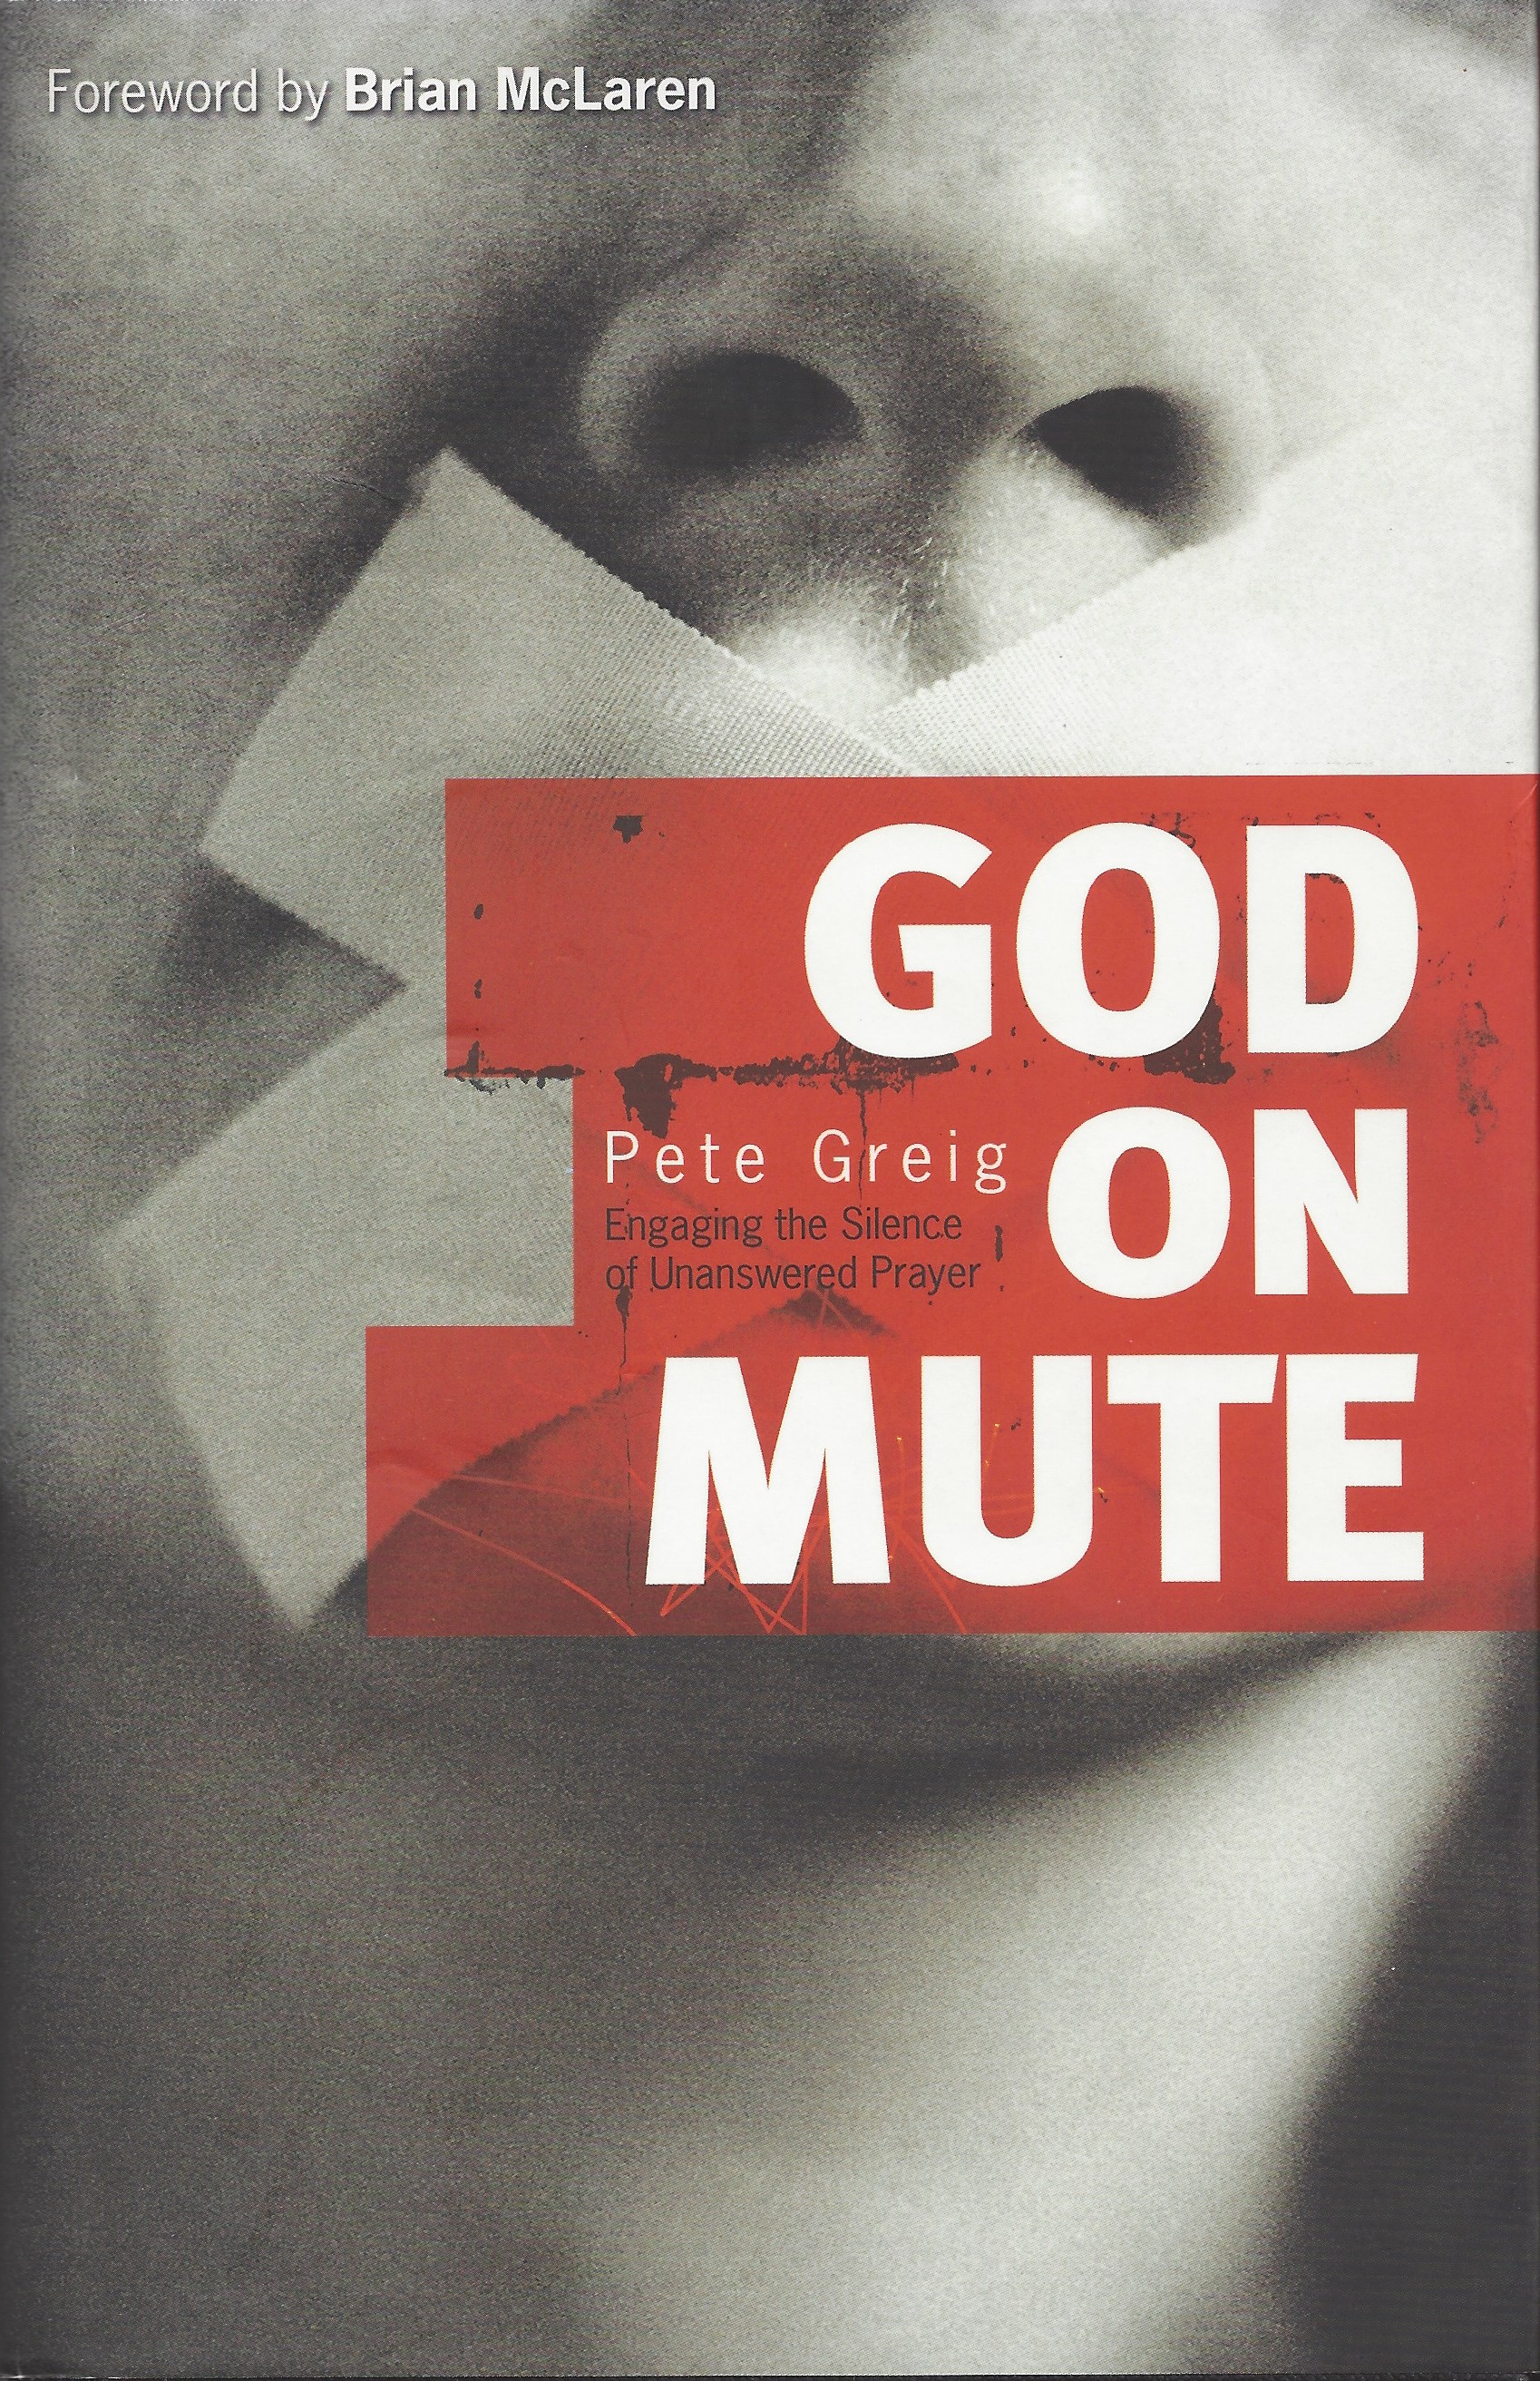 God on Mute scanned